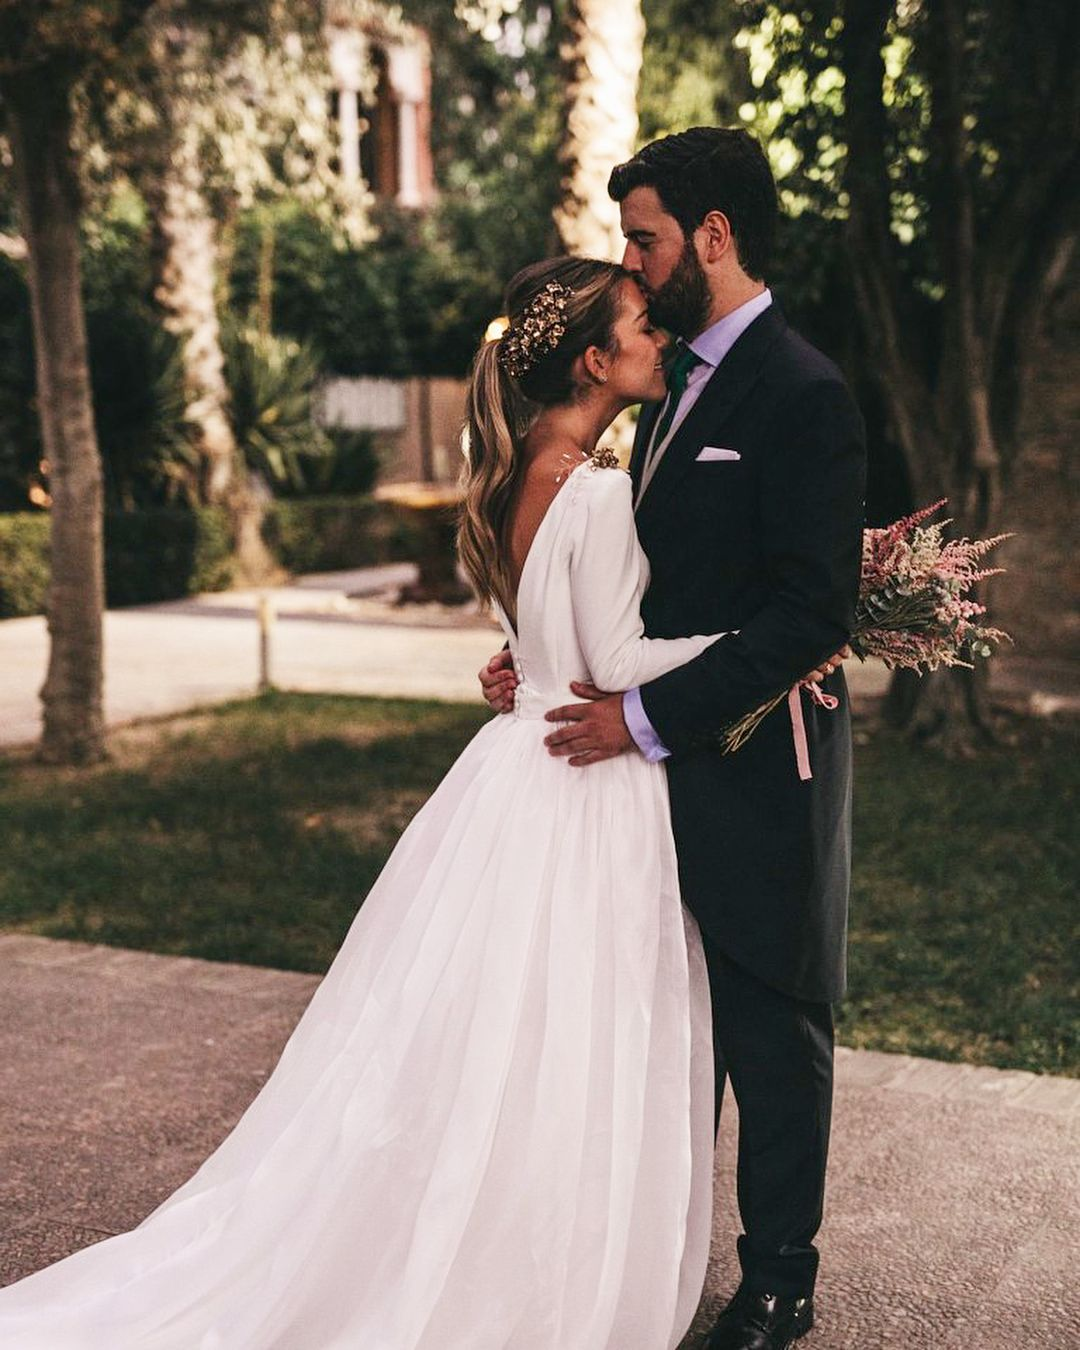 Pin by katlyn thele on party ideaswedding pinterest wedding